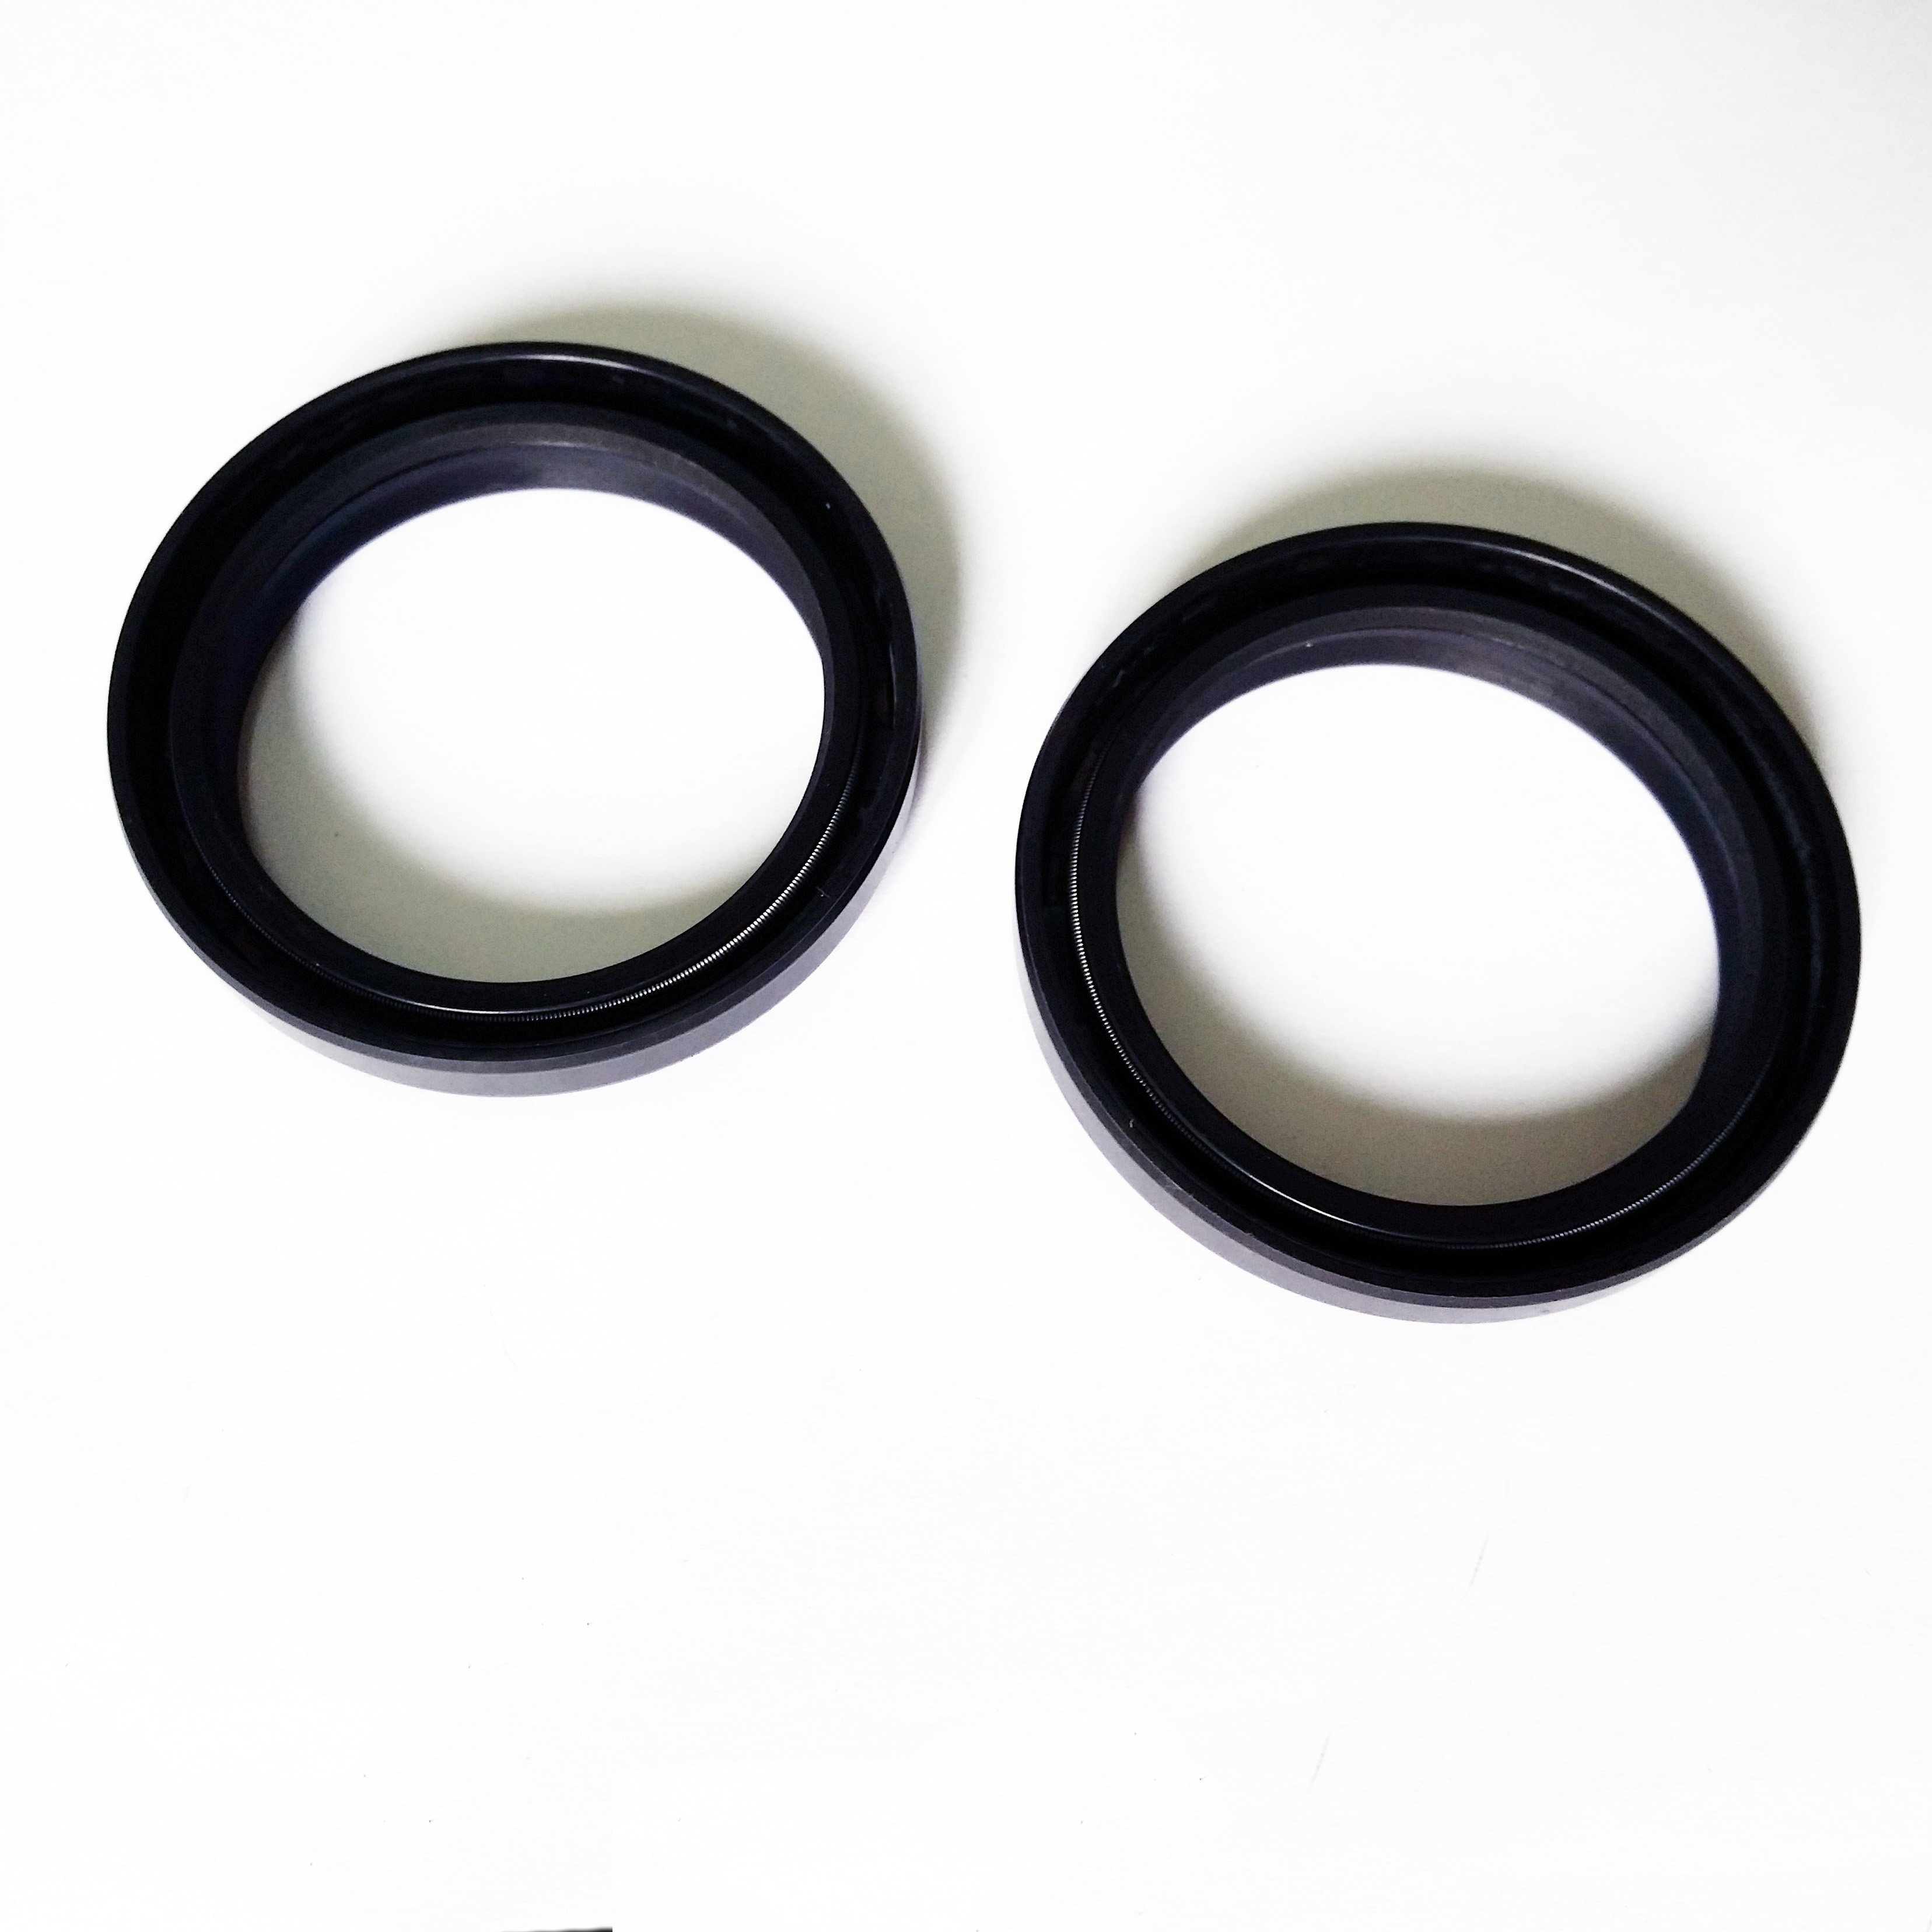 K-Tech Kawasaki ZX9-R 1998-2003 Front Fork Oil Seals NOK 46x58.1x11mm